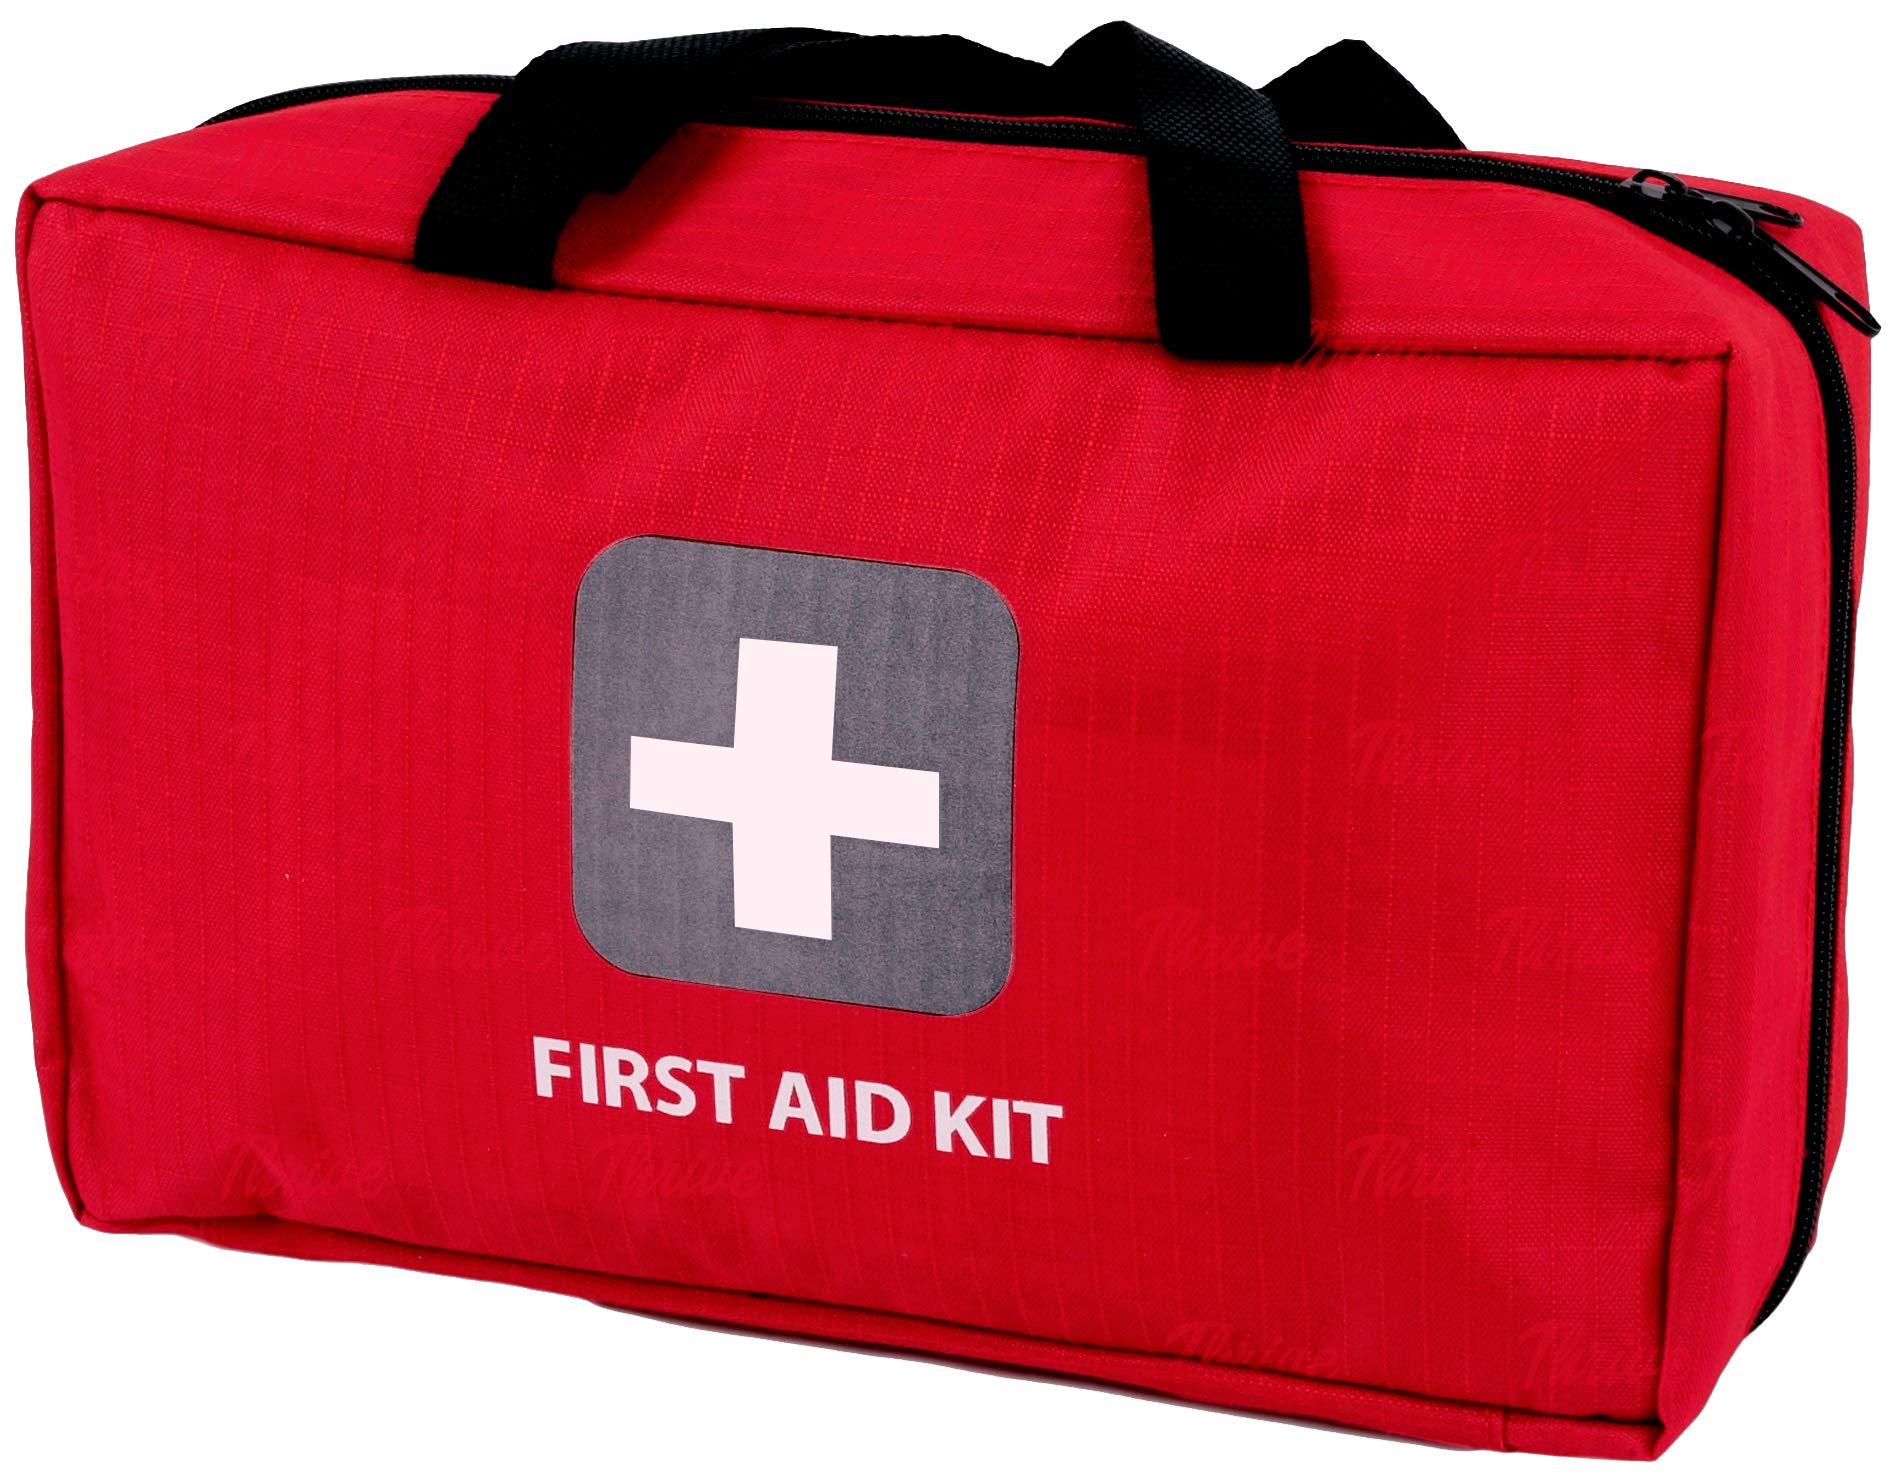 First Aid Kit - 291 Pieces - Bag. Packed with Hospital Grade Medical Supplies for Emergency and Survival situations. Ideal for The Car, Camping, Hiking, Travel, Office, Sports, Pets, Hunting, Home by Thrive